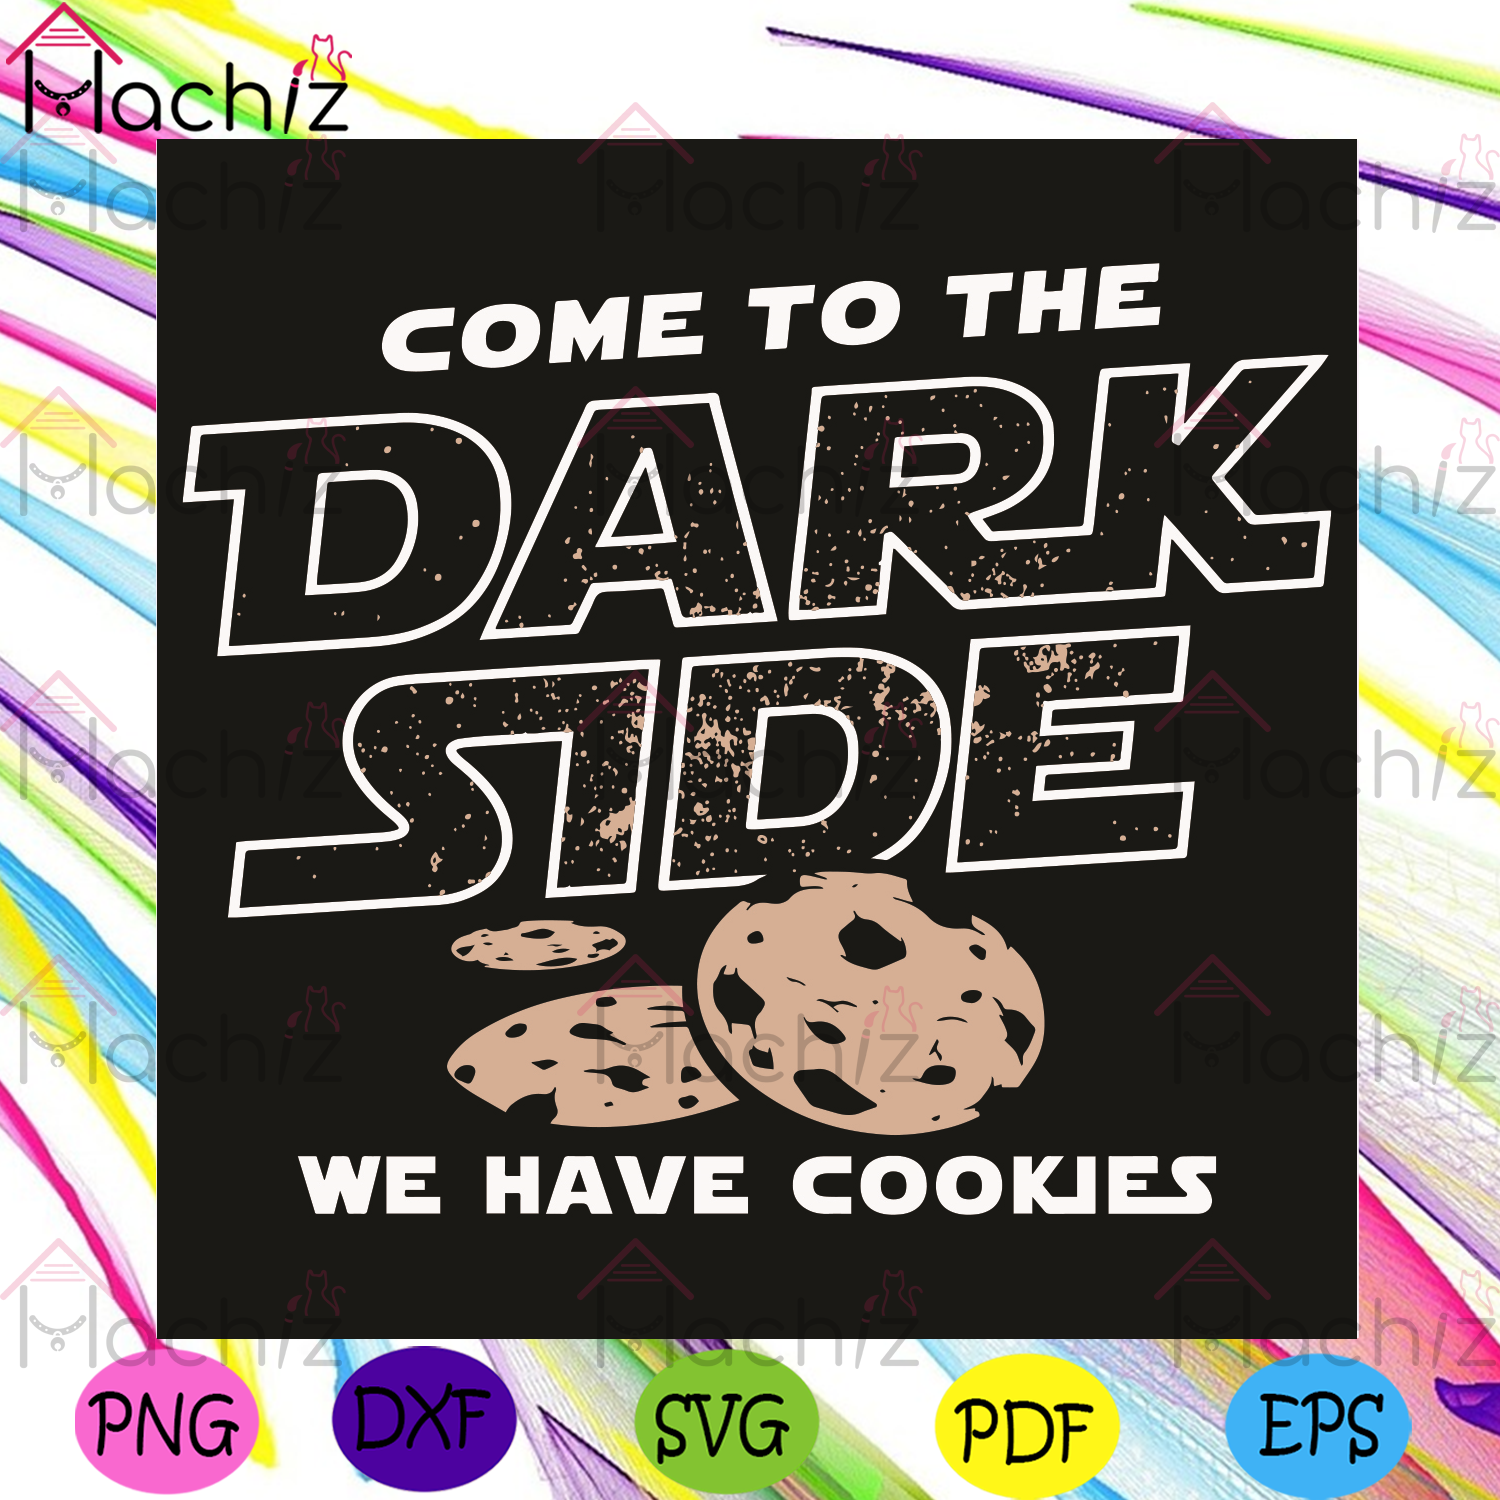 Come To The Dark Side We Have Cookies Svg, Trending Svg, Dark Side Svg, Cookies Svg, Star Wars Svg, Star Wars Lovers Svg, Star Wars Gifts Svg, Universe Svg, Star Svg, Space Svg, Funny Quotes Svg, Funny Design Svg